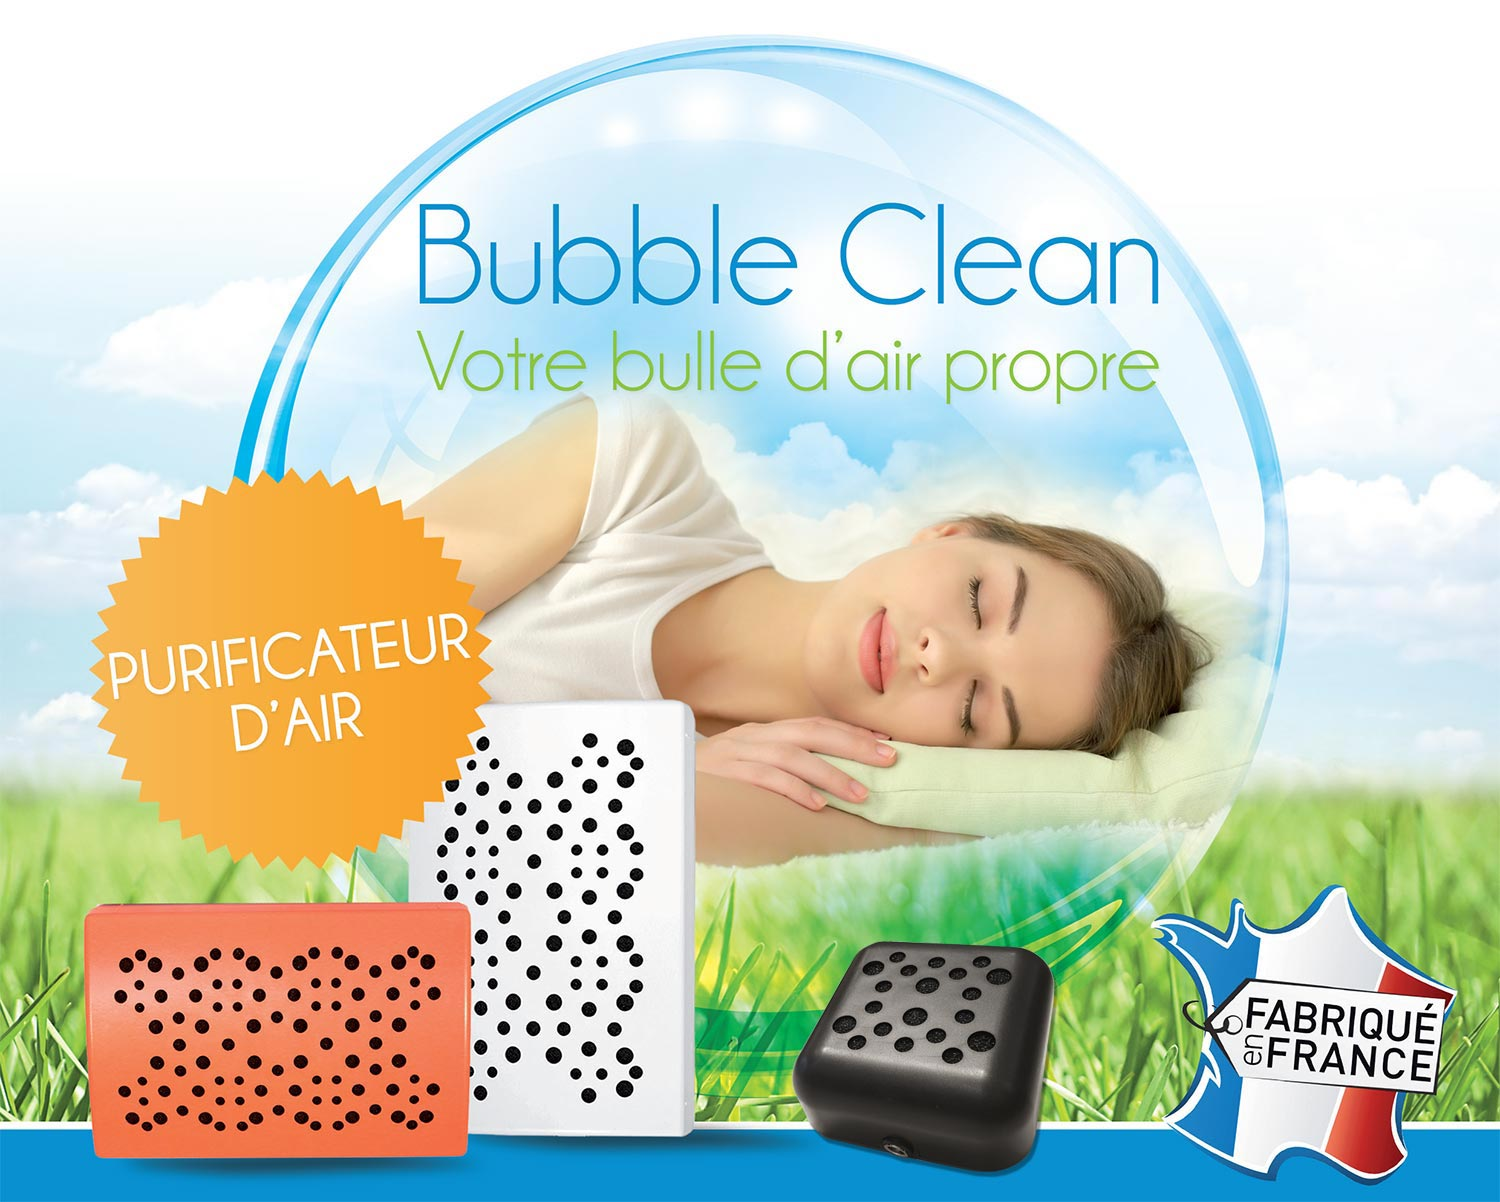 bubble-clean-purificateur-air-maison-bureau